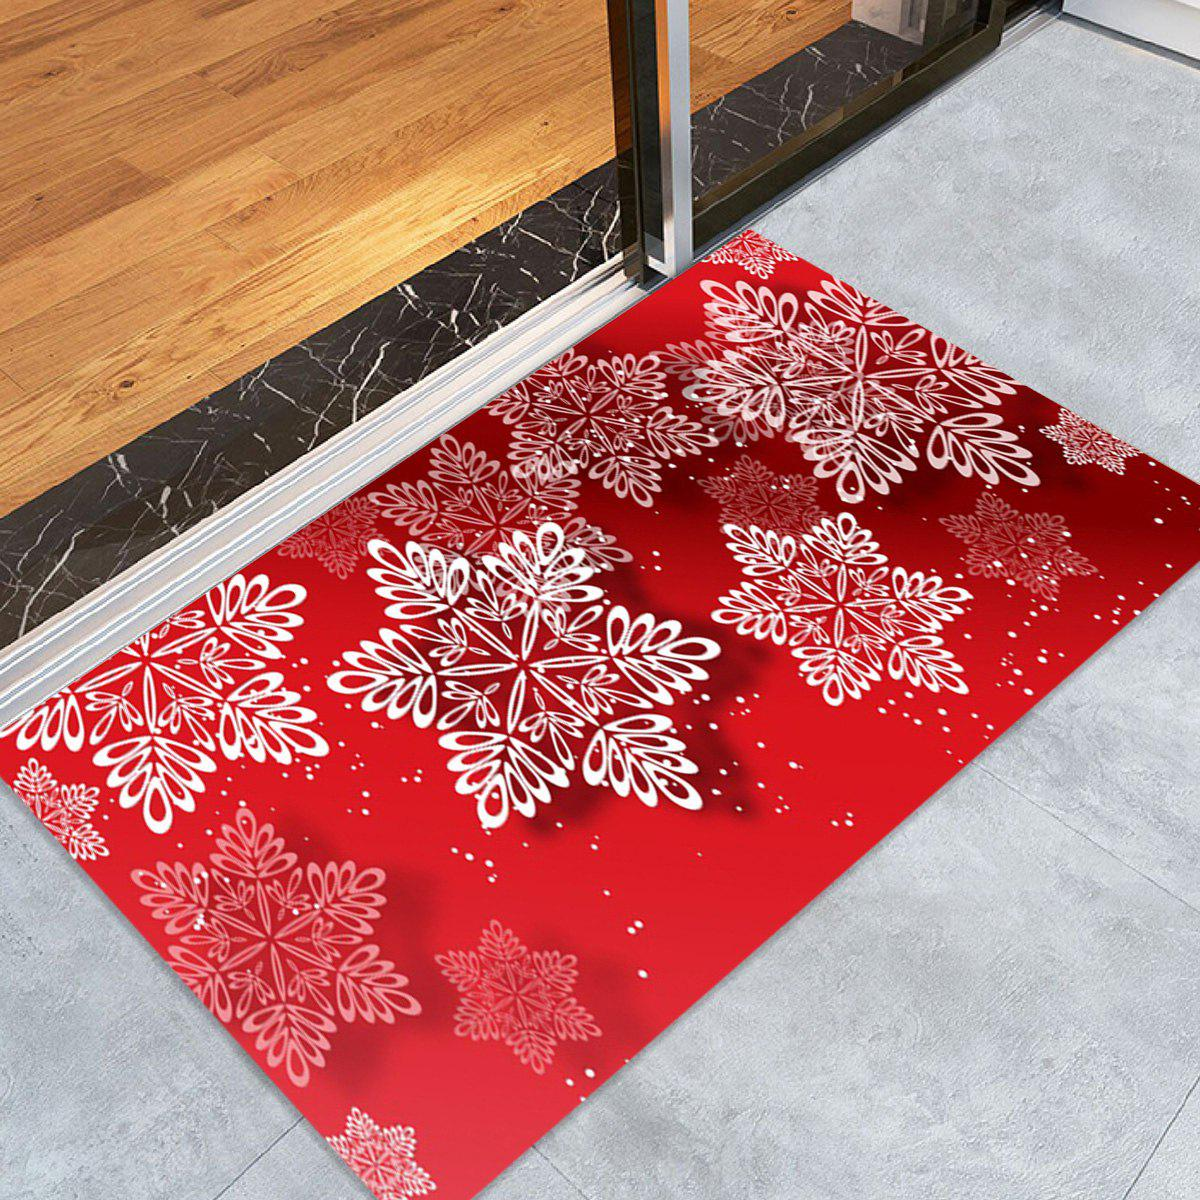 Christmas Snowflakes Pattern Anti-skid Water Absorption Area RugHOME<br><br>Size: W24 INCH * L35.5 INCH; Color: RED; Products Type: Bath rugs; Materials: Coral FLeece; Pattern: Snowflake; Style: Festival; Shape: Rectangle; Package Contents: 1 x Rug;